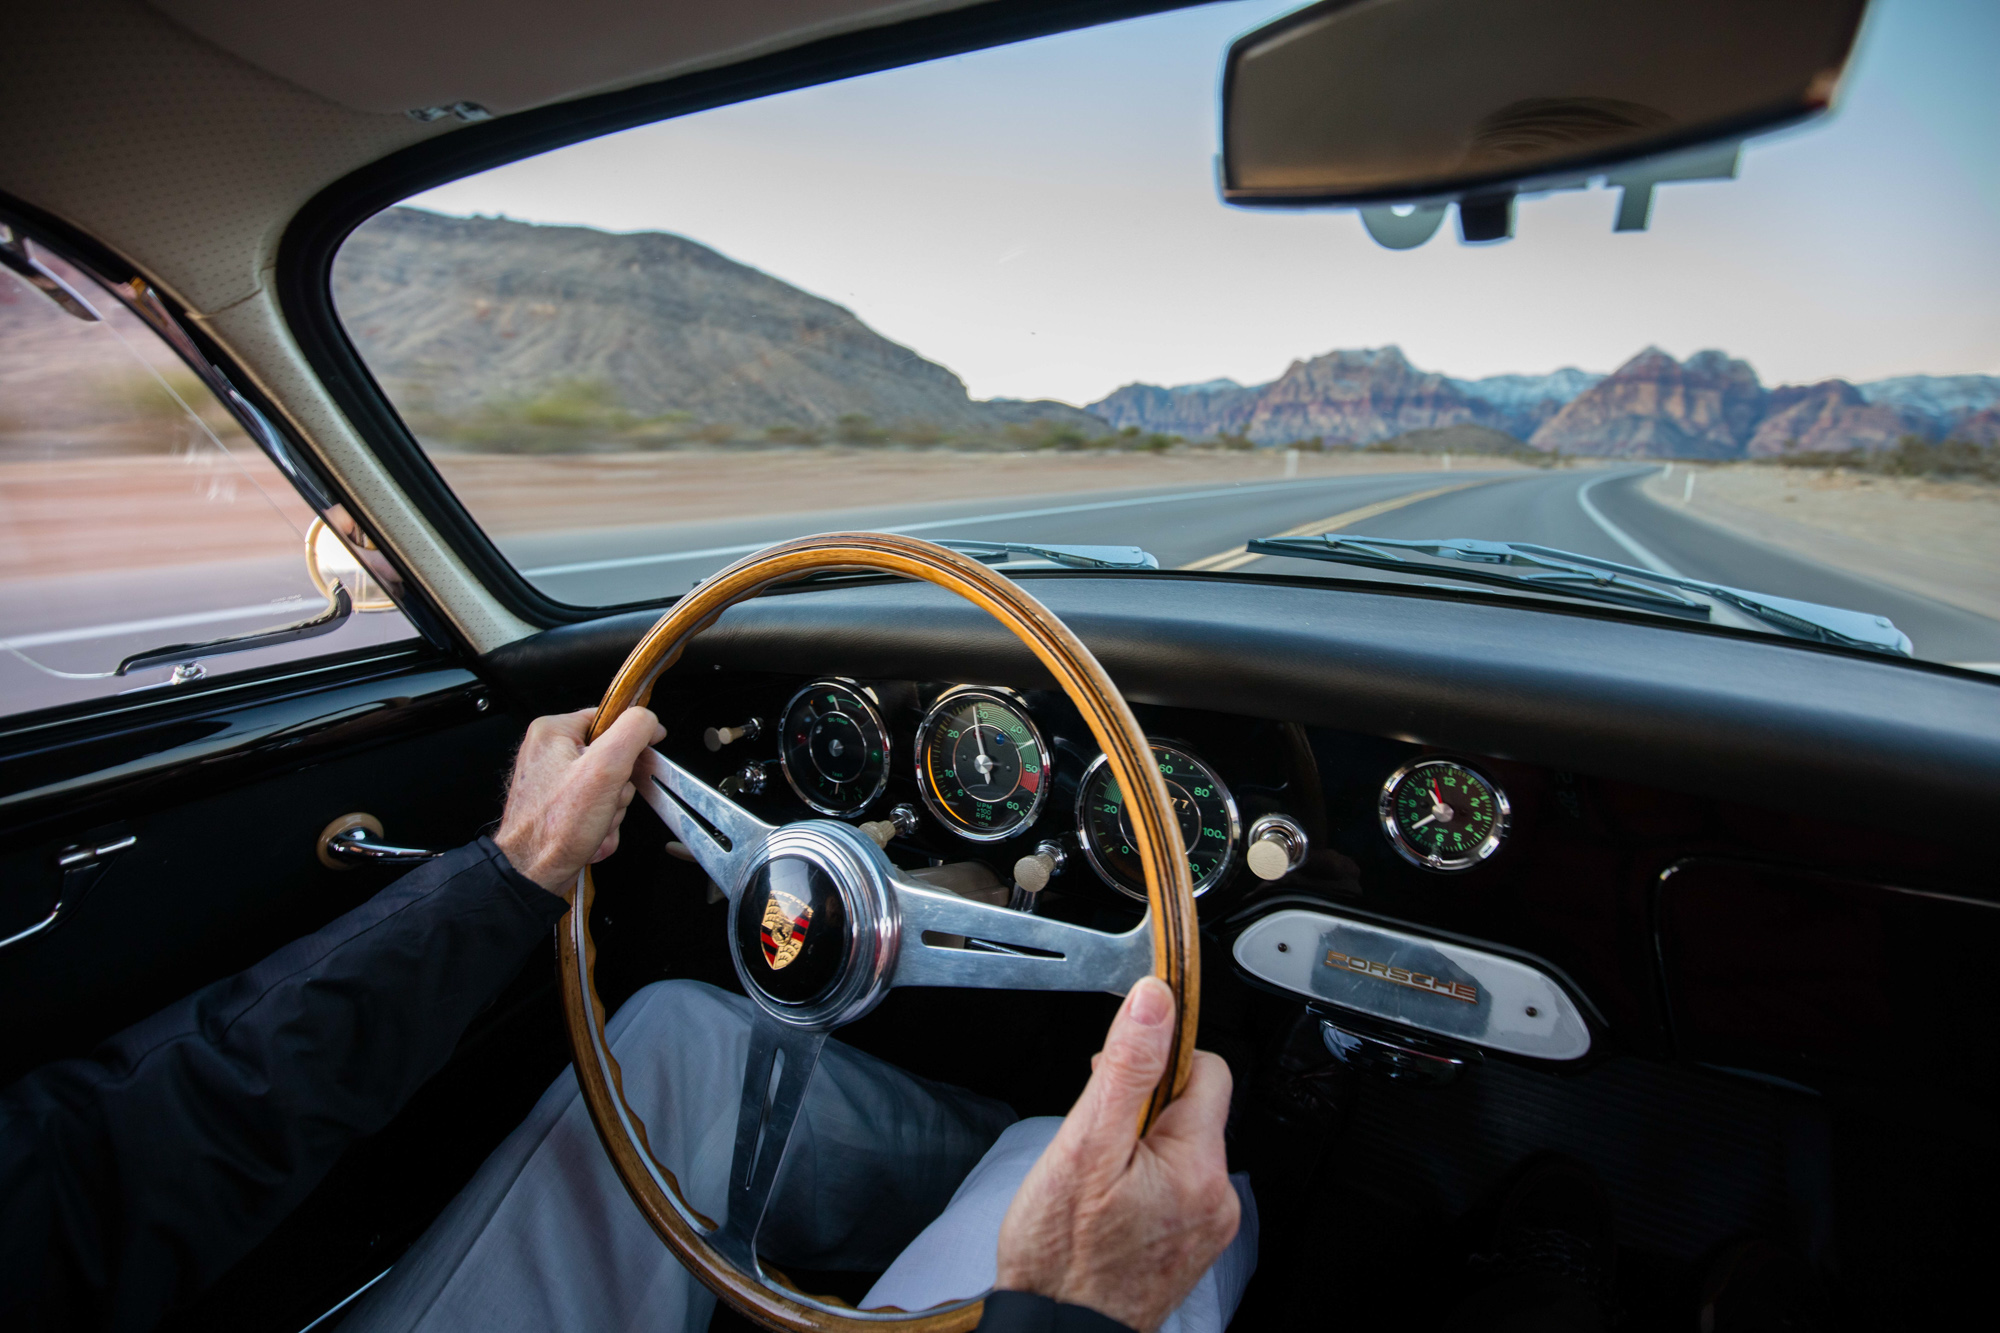 Lifestyle photo of man driving a vintage Porsche in Red Rocks, Nevada.